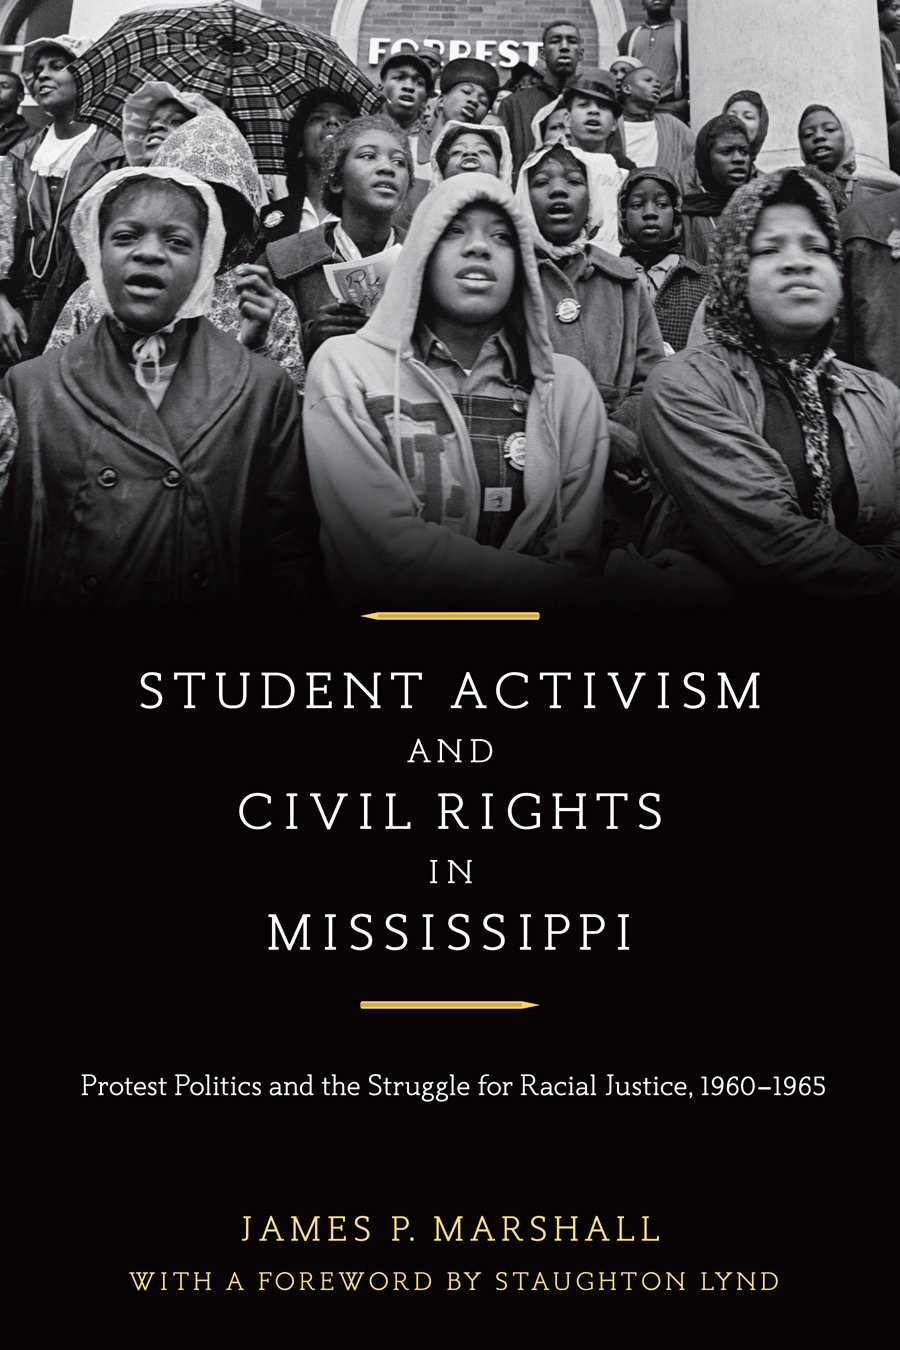 Student Activism and Civil Rights in Mississippi: Protest Politics and the Struggle for Racial Justice, 1960-1965 PDF